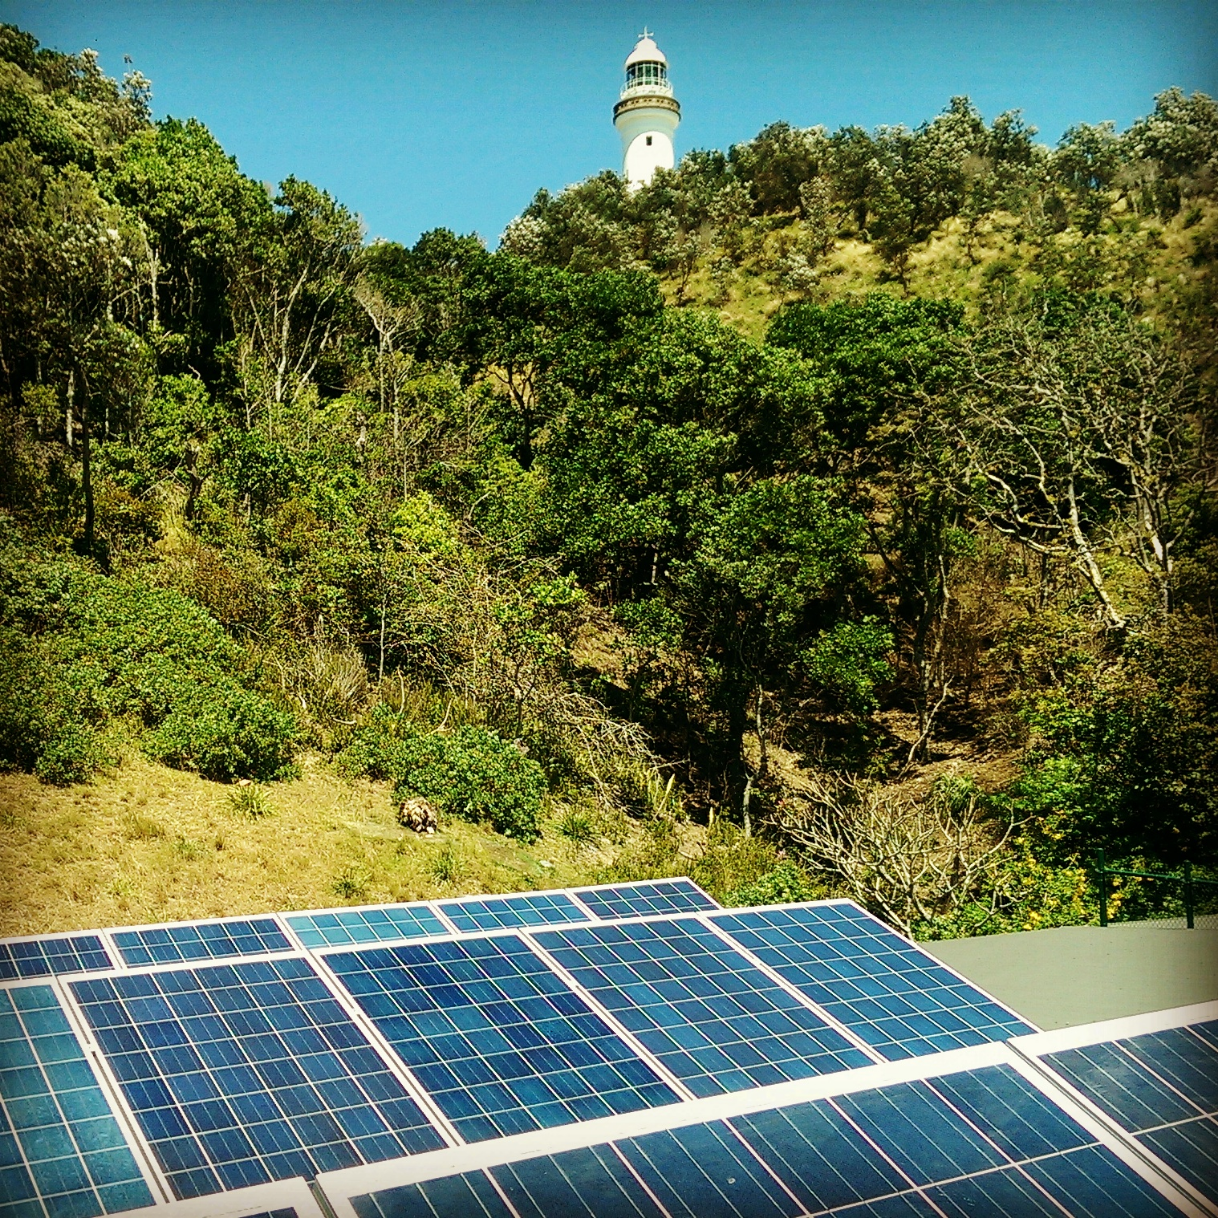 The most easterly solar system in Australia.   This 5kW residential system resides at Brownell Drive, Byron Bay. A 22 degree tilted frame was fitted, facing a northerly aspect, to maximise the sunshine's rays. You can see this system in all its glory when surfing Wategoes.